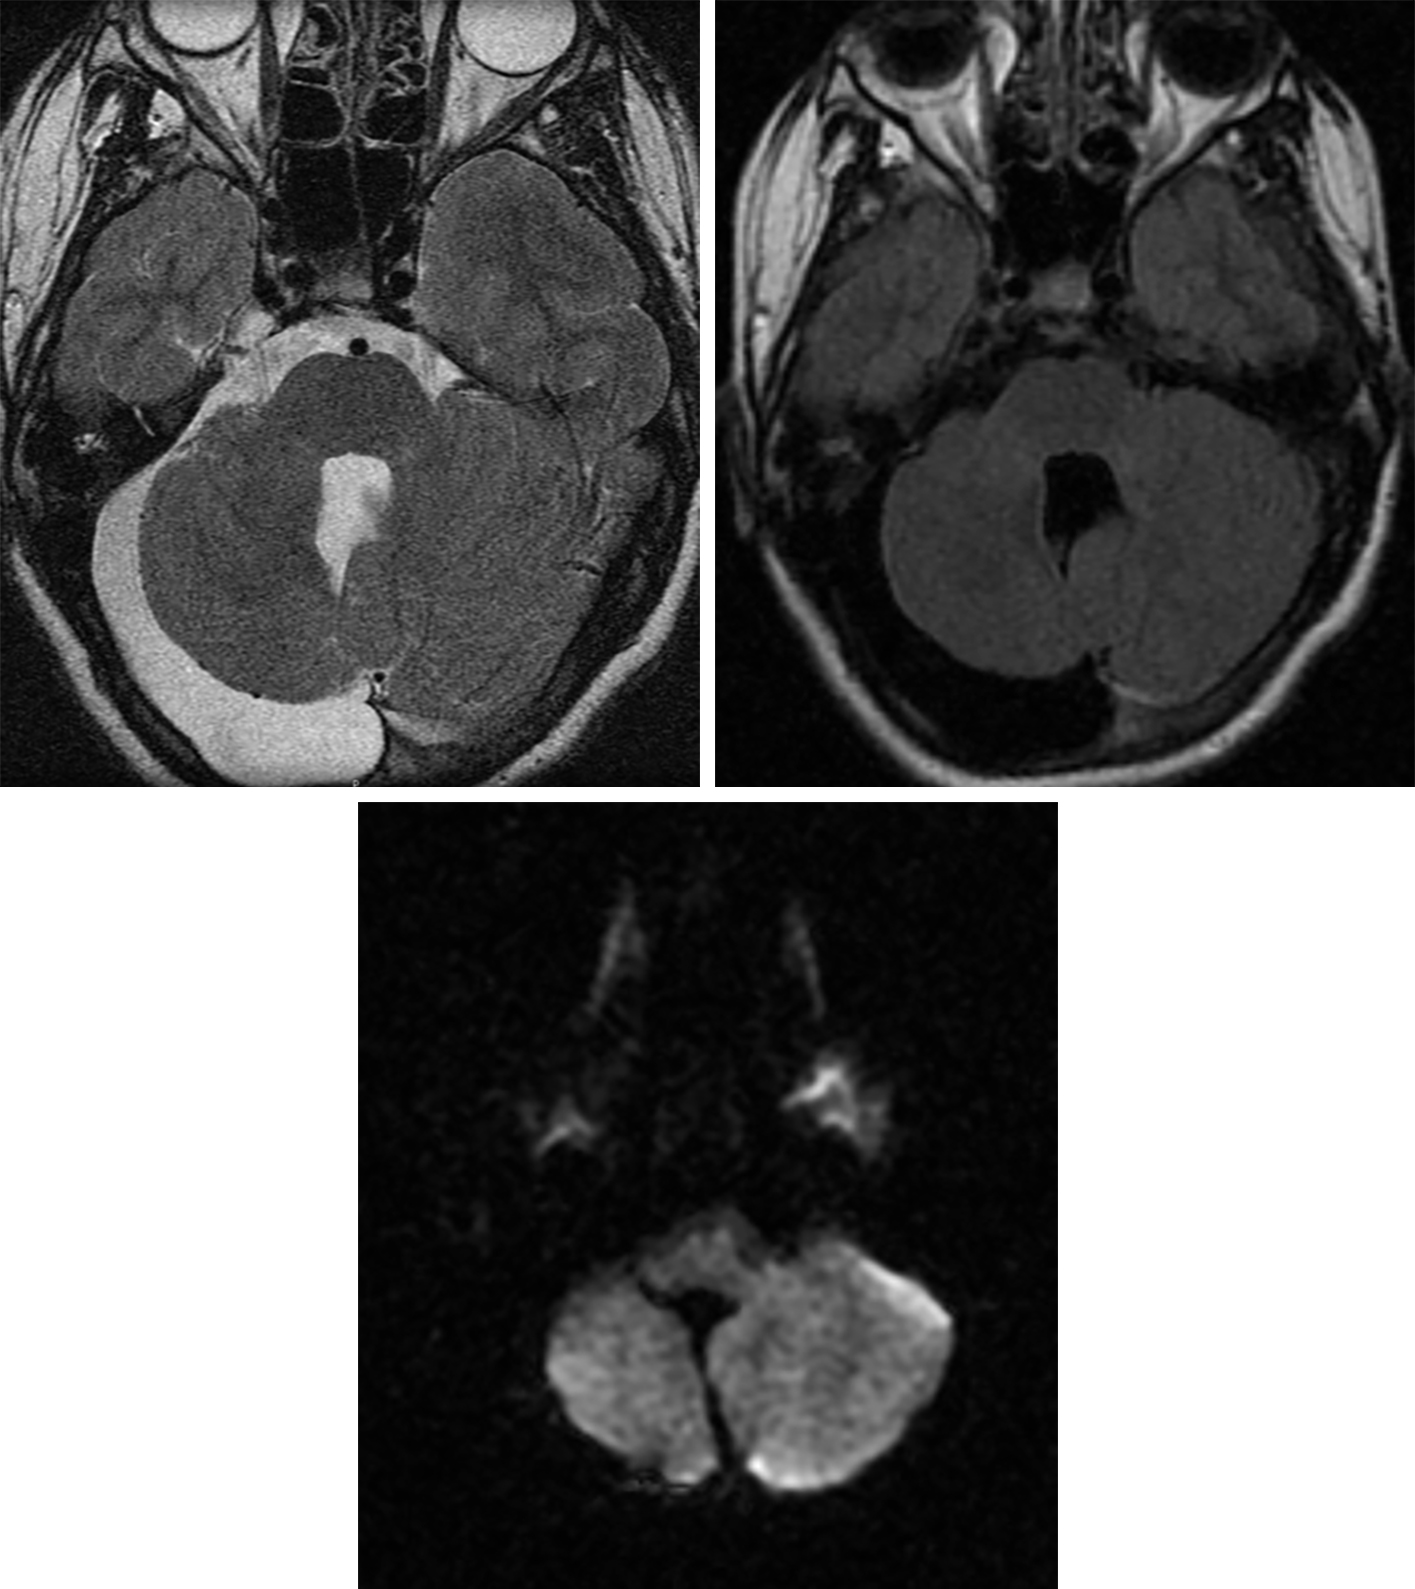 Figure 2: This arachnoid cyst posterior to the right cerebellar hemisphere demonstrates T2 hyperintensity (top left) and completely suppresses on FLAIR (top right), matching the CSF in the fourth ventricle on both of these sequences. It exhibits no DWI hyperintensity (bottom), distinguishing this arachnoid cyst from an epidermoid cyst. The mass effect on the adjacent cerebellum is somewhat substantial, but the parenchyma is without edema, suggesting a chronic or developmental abnormality. The calvarium is also thinned overlying the cyst on T2 (top left), another characteristic that implies chronicity.